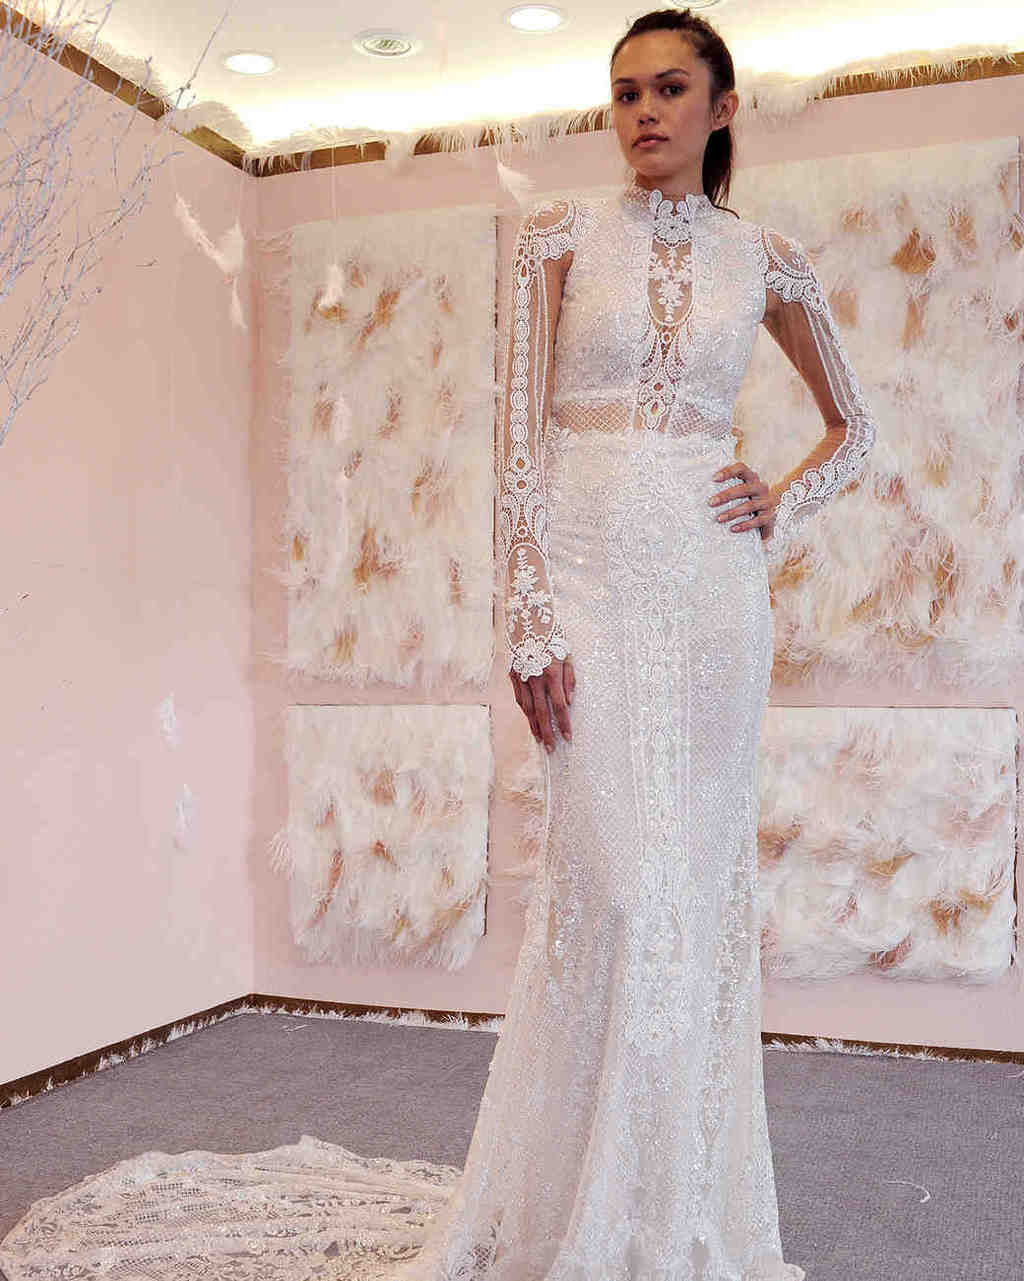 Galia-Lahav-gala-wedding-dress-fall2017-6203351-001_vert